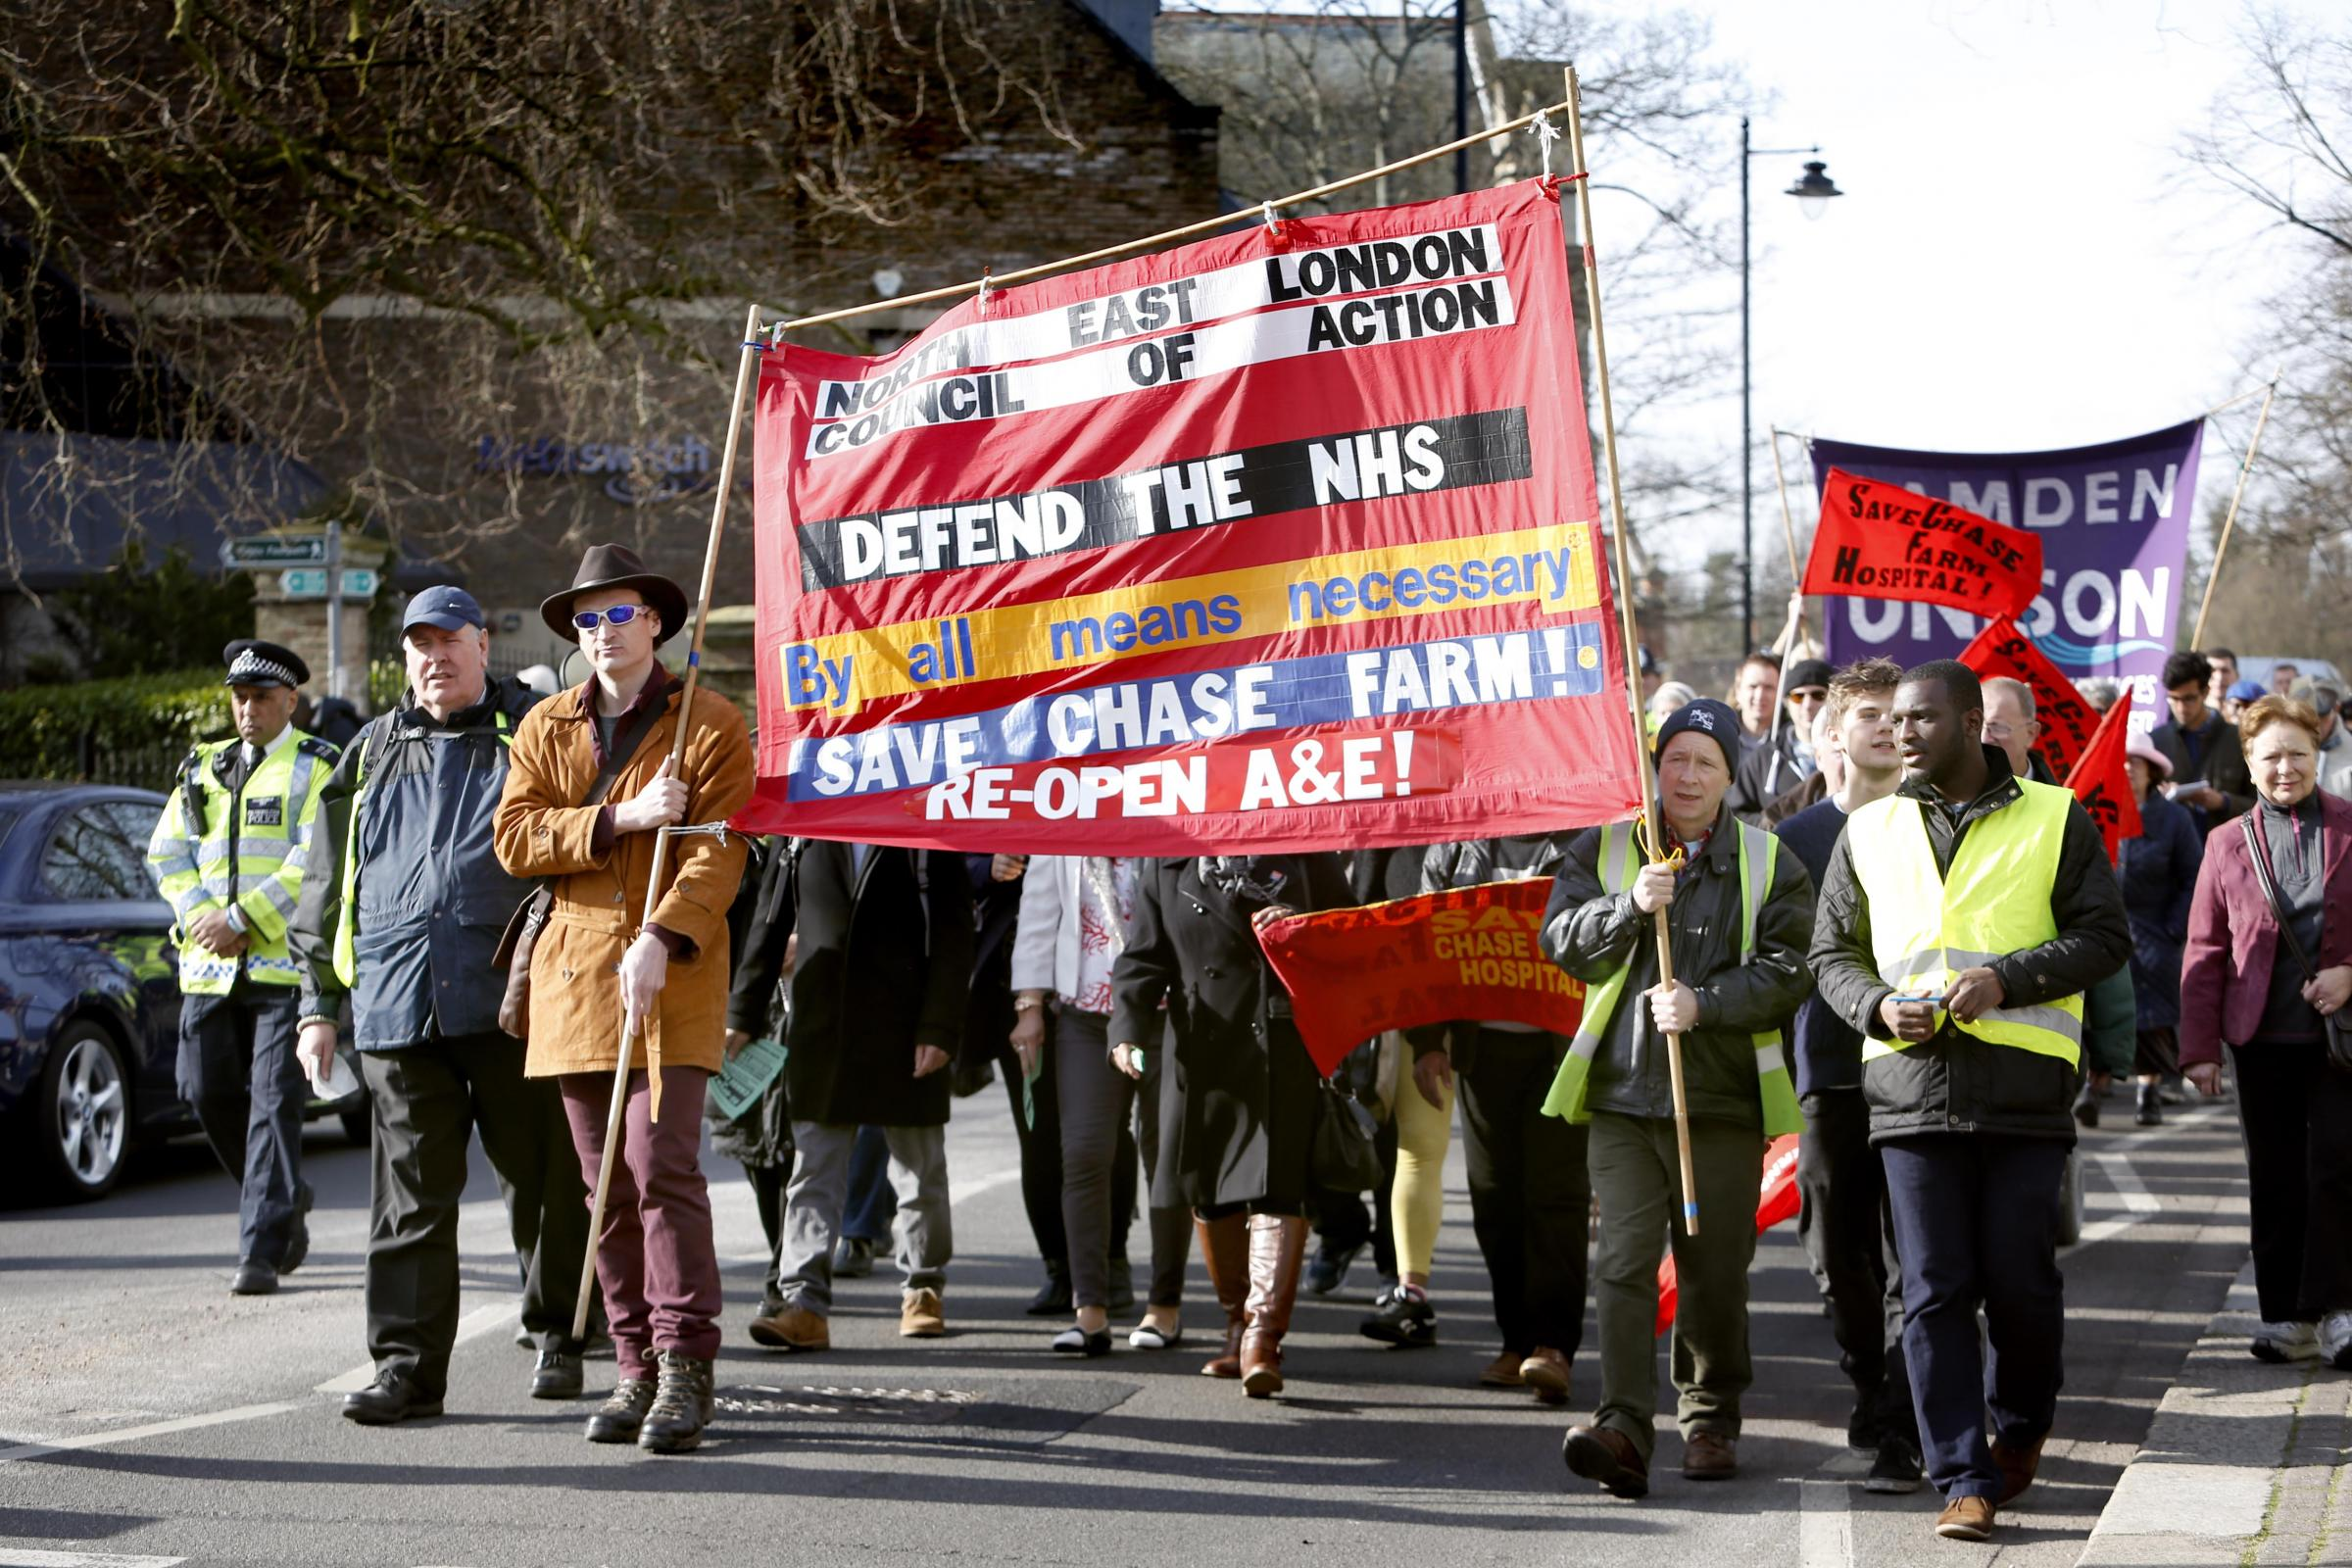 The North East London Council of Action organised a march against the A&E closure at Chase Farm Hospital